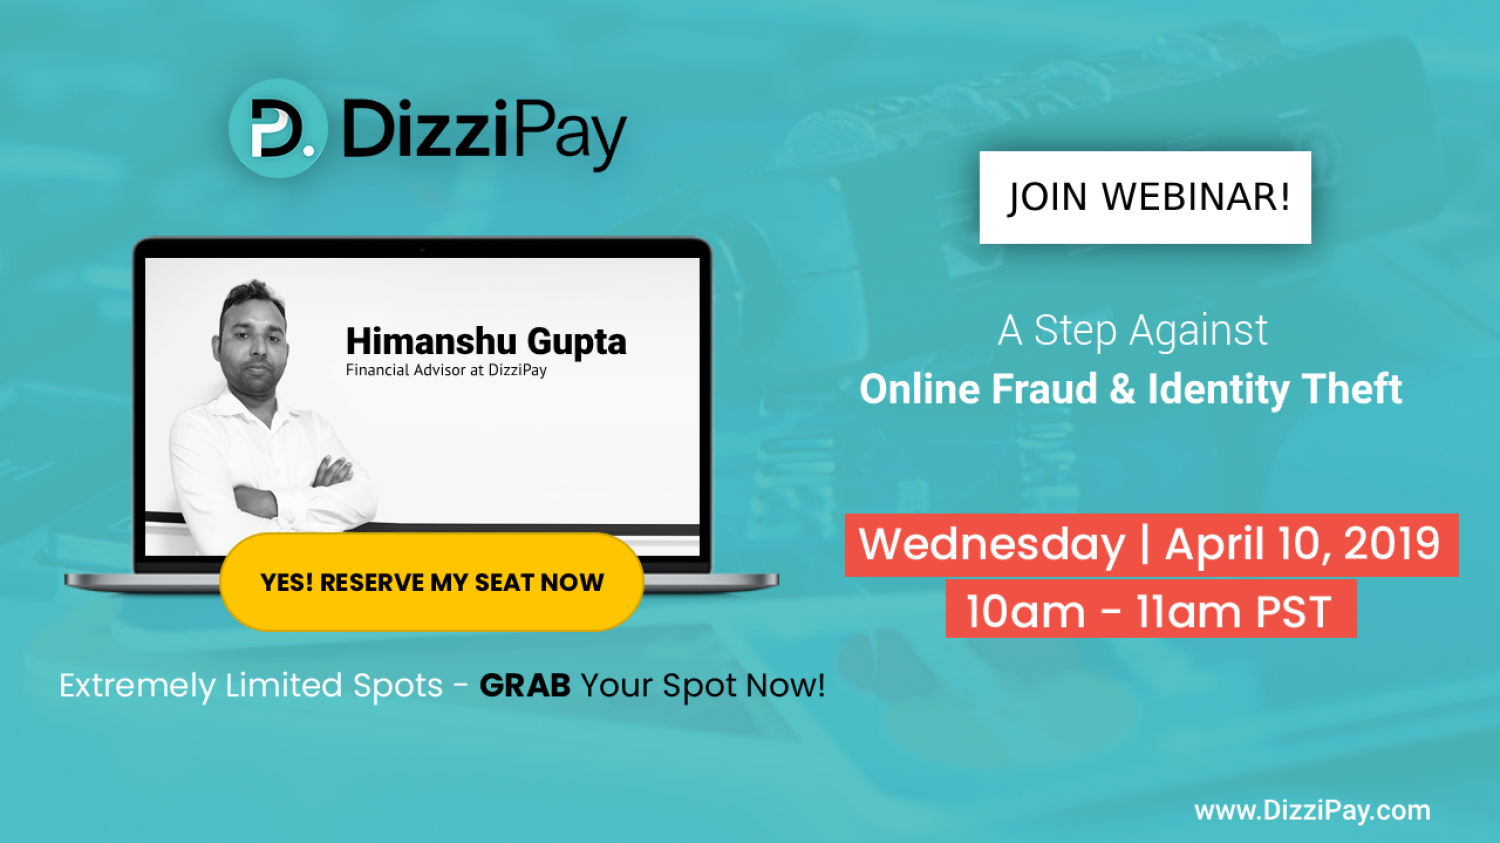 Live Webinar on Consumer Awareness: A Step Against Online Fraud and Identity Theft Infographic